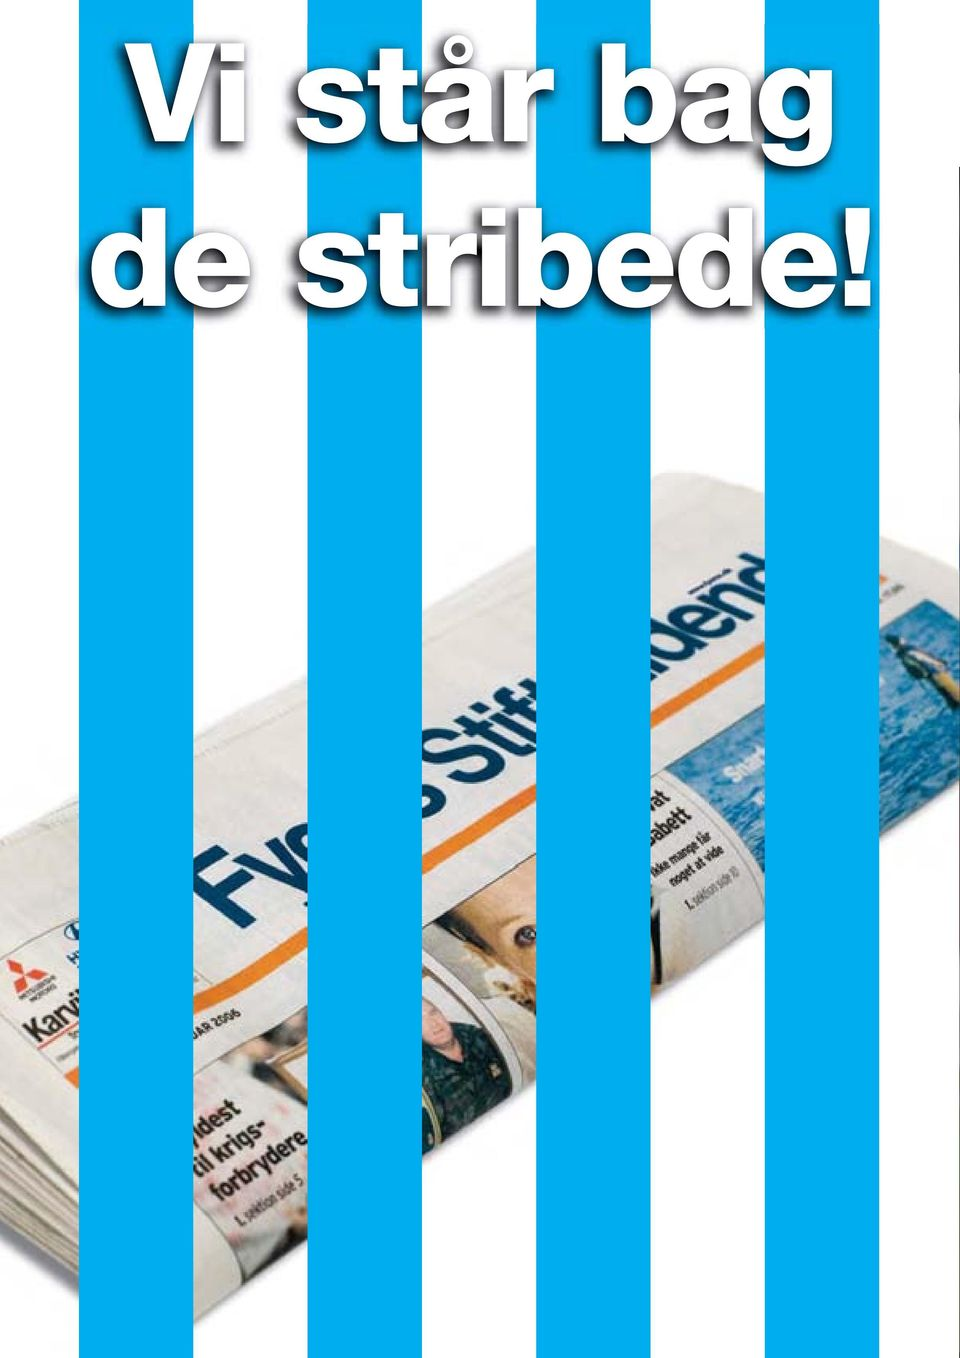 stribede!